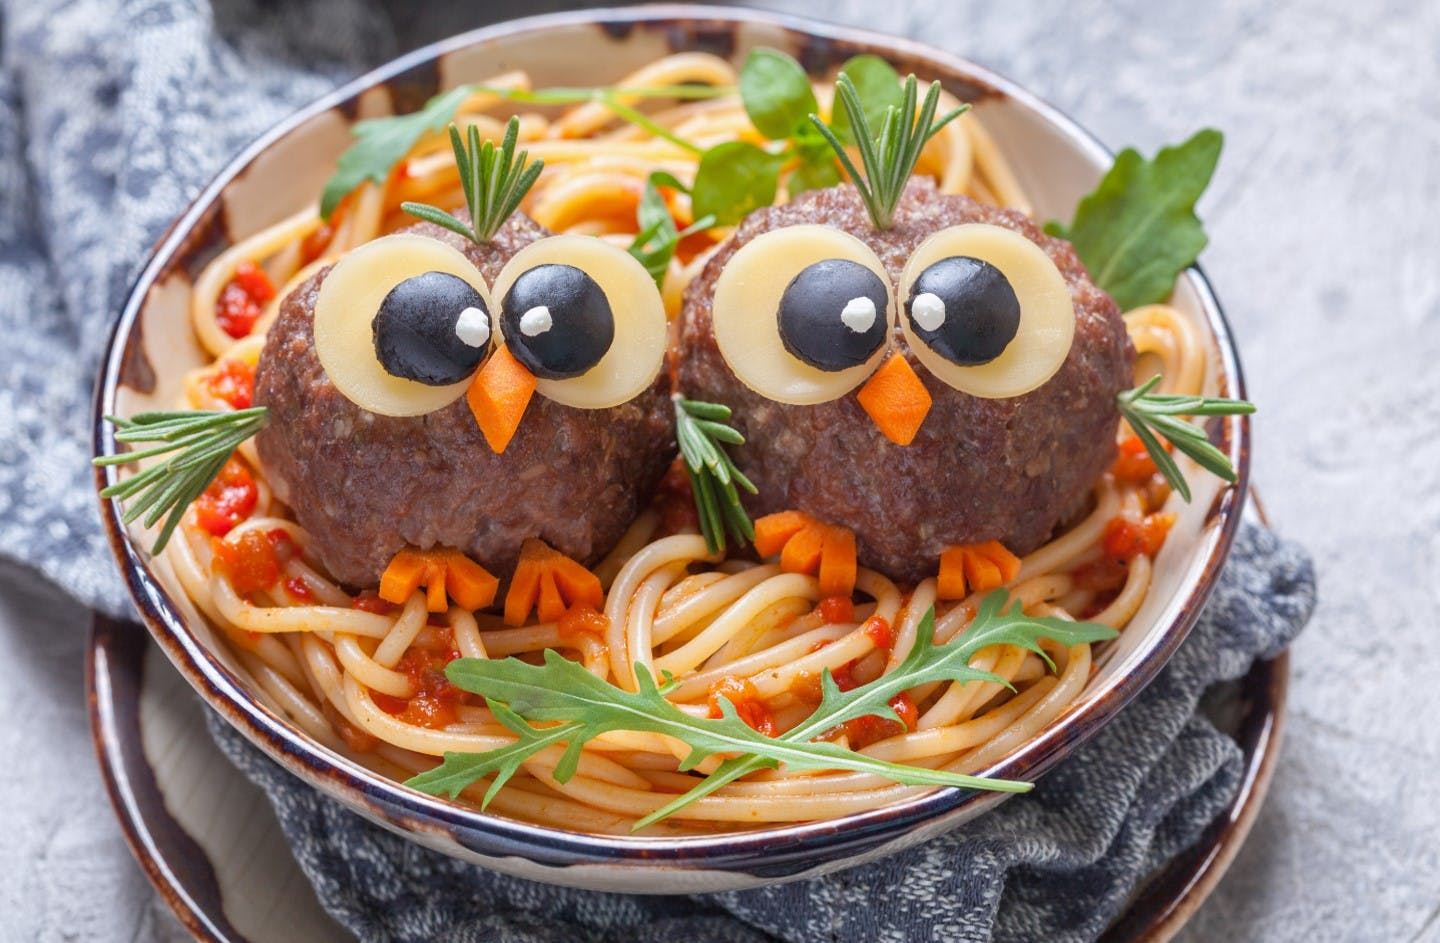 Birdy Meatballs and Pasta